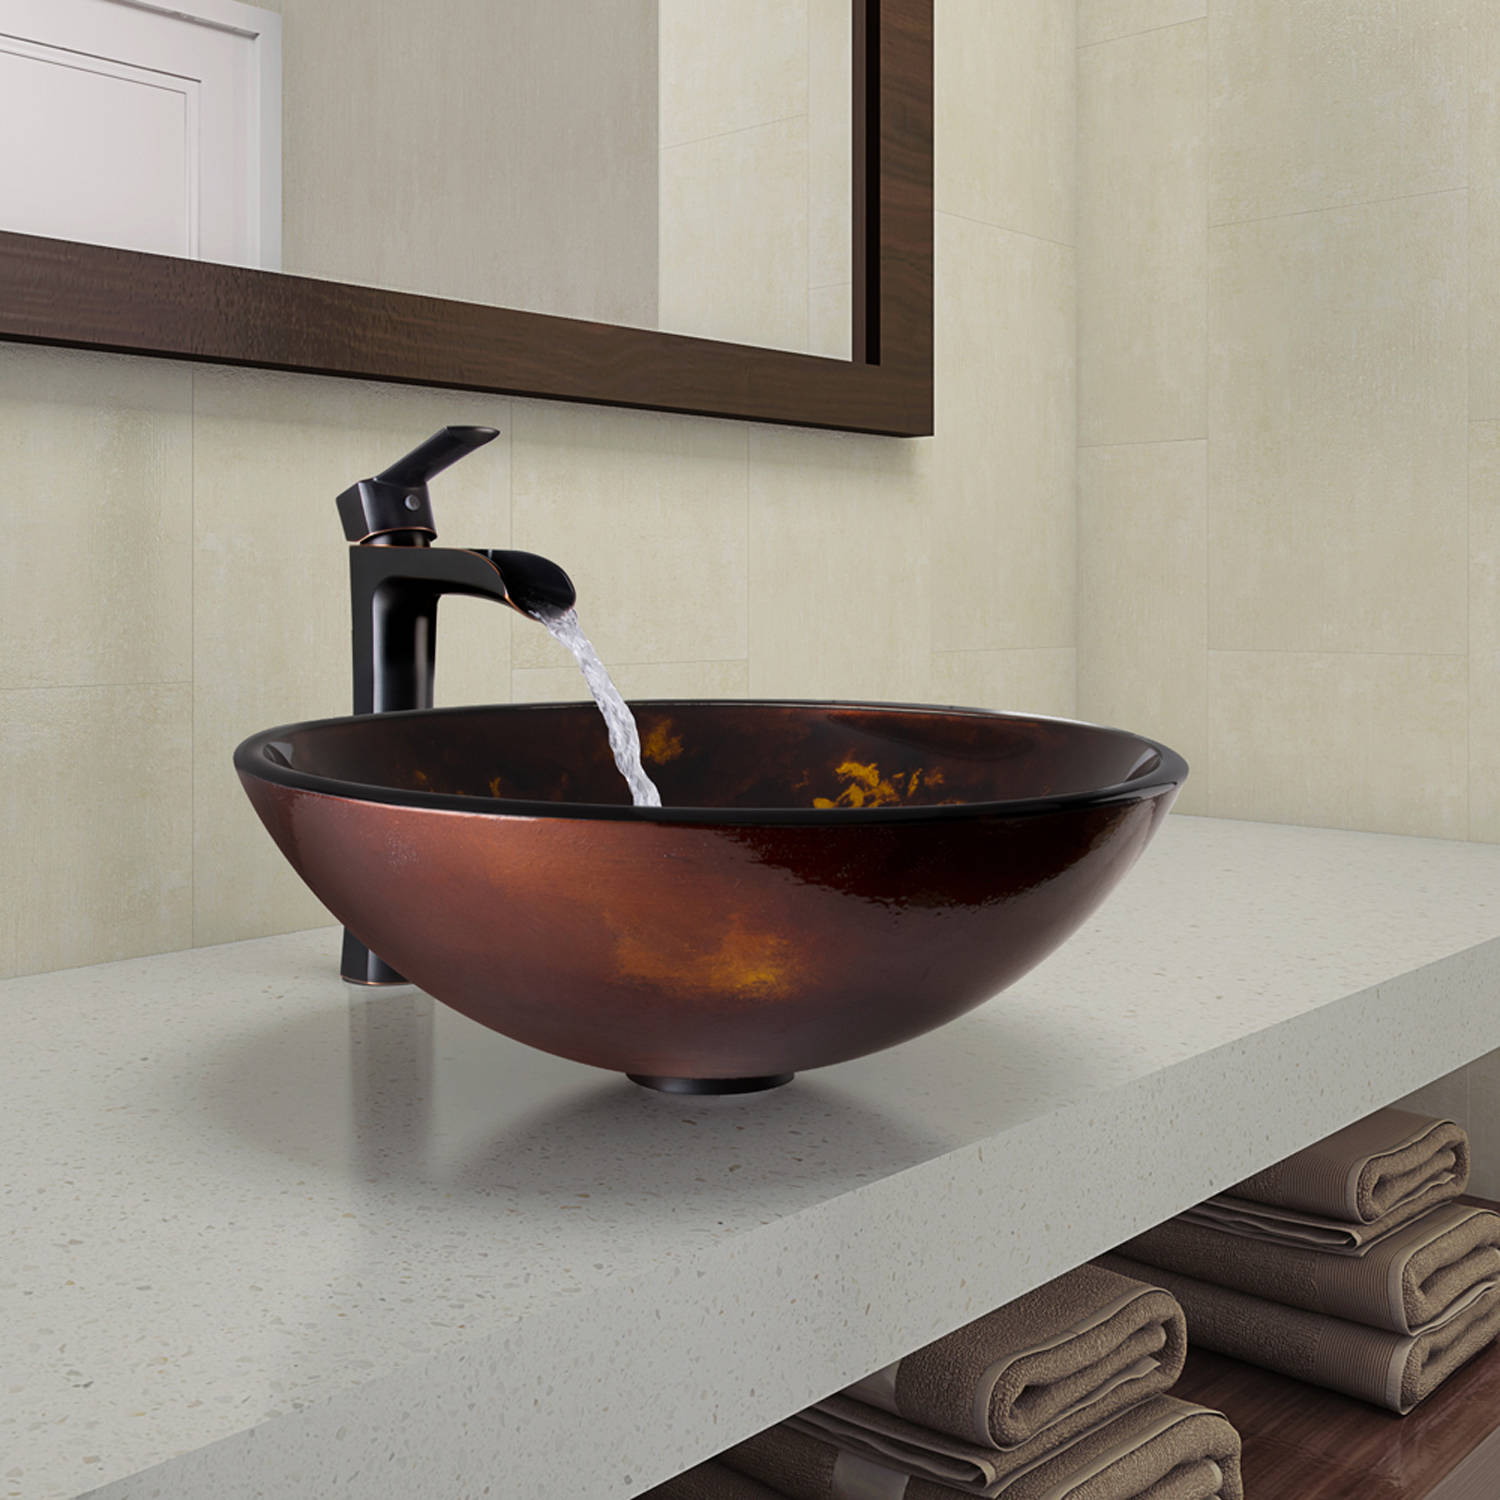 VIGO Glass Circular Vessel Bathroom Sink with Faucet